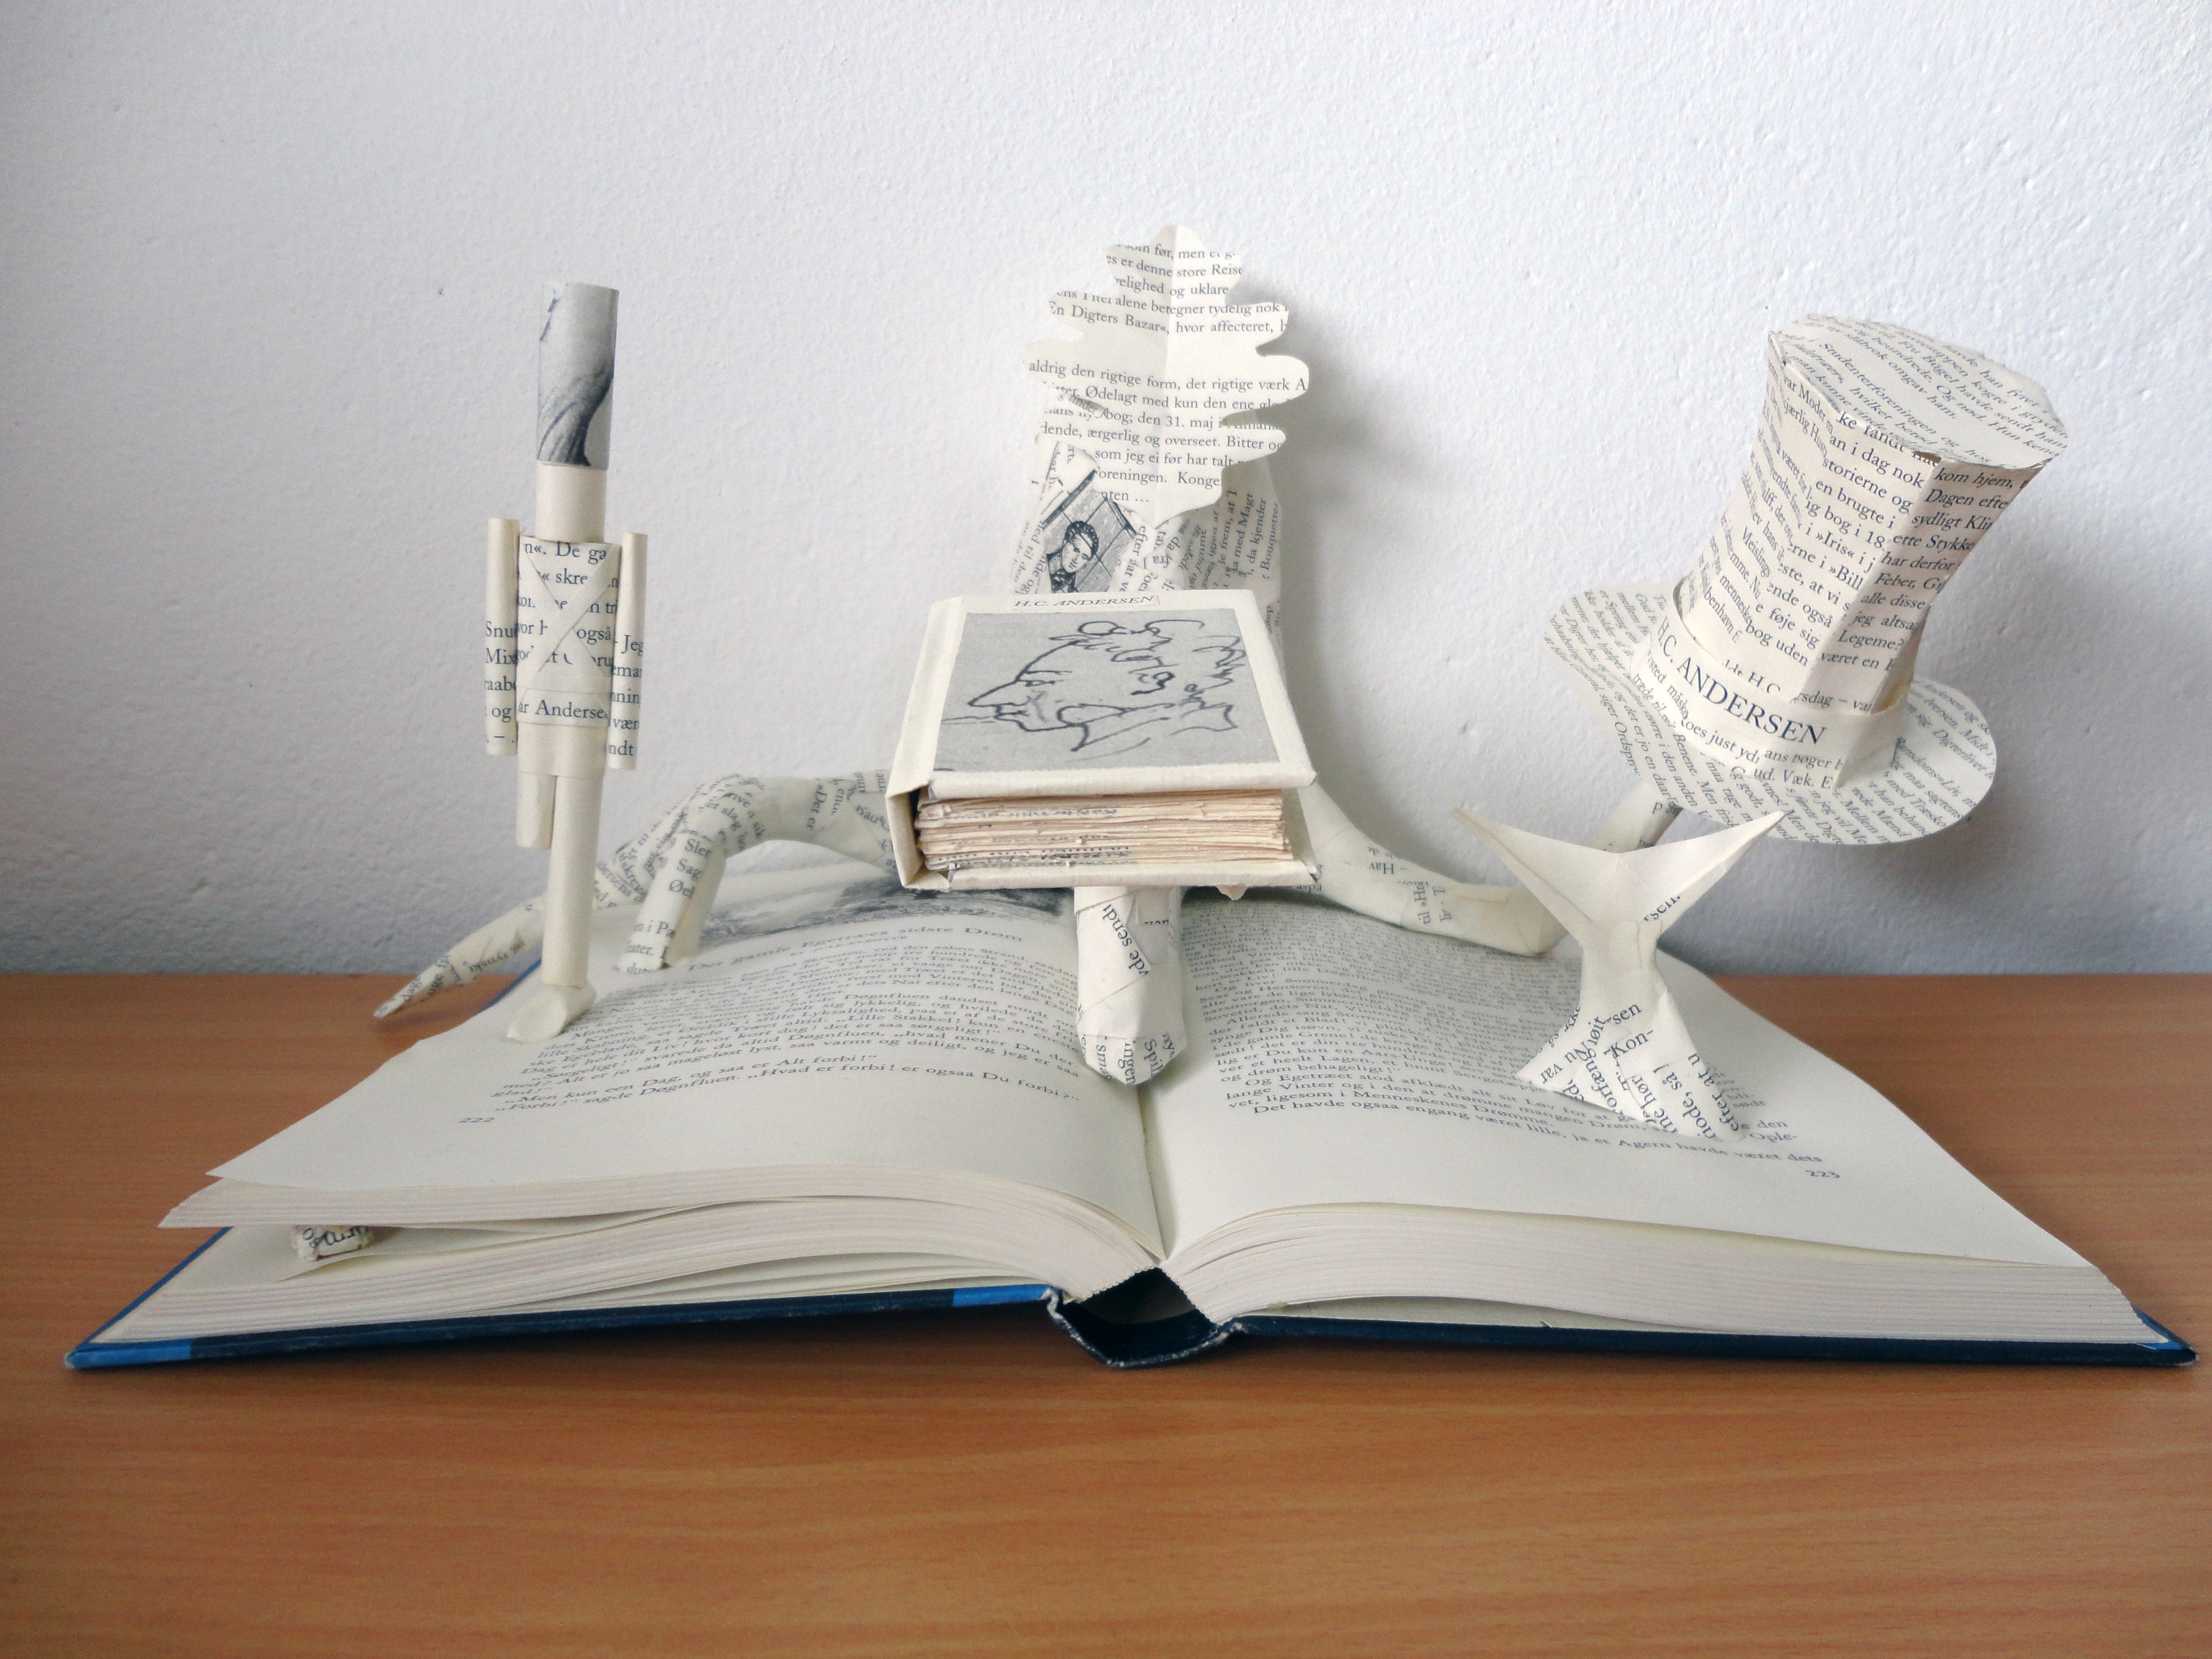 Book Sculpture: H.C. Andersen